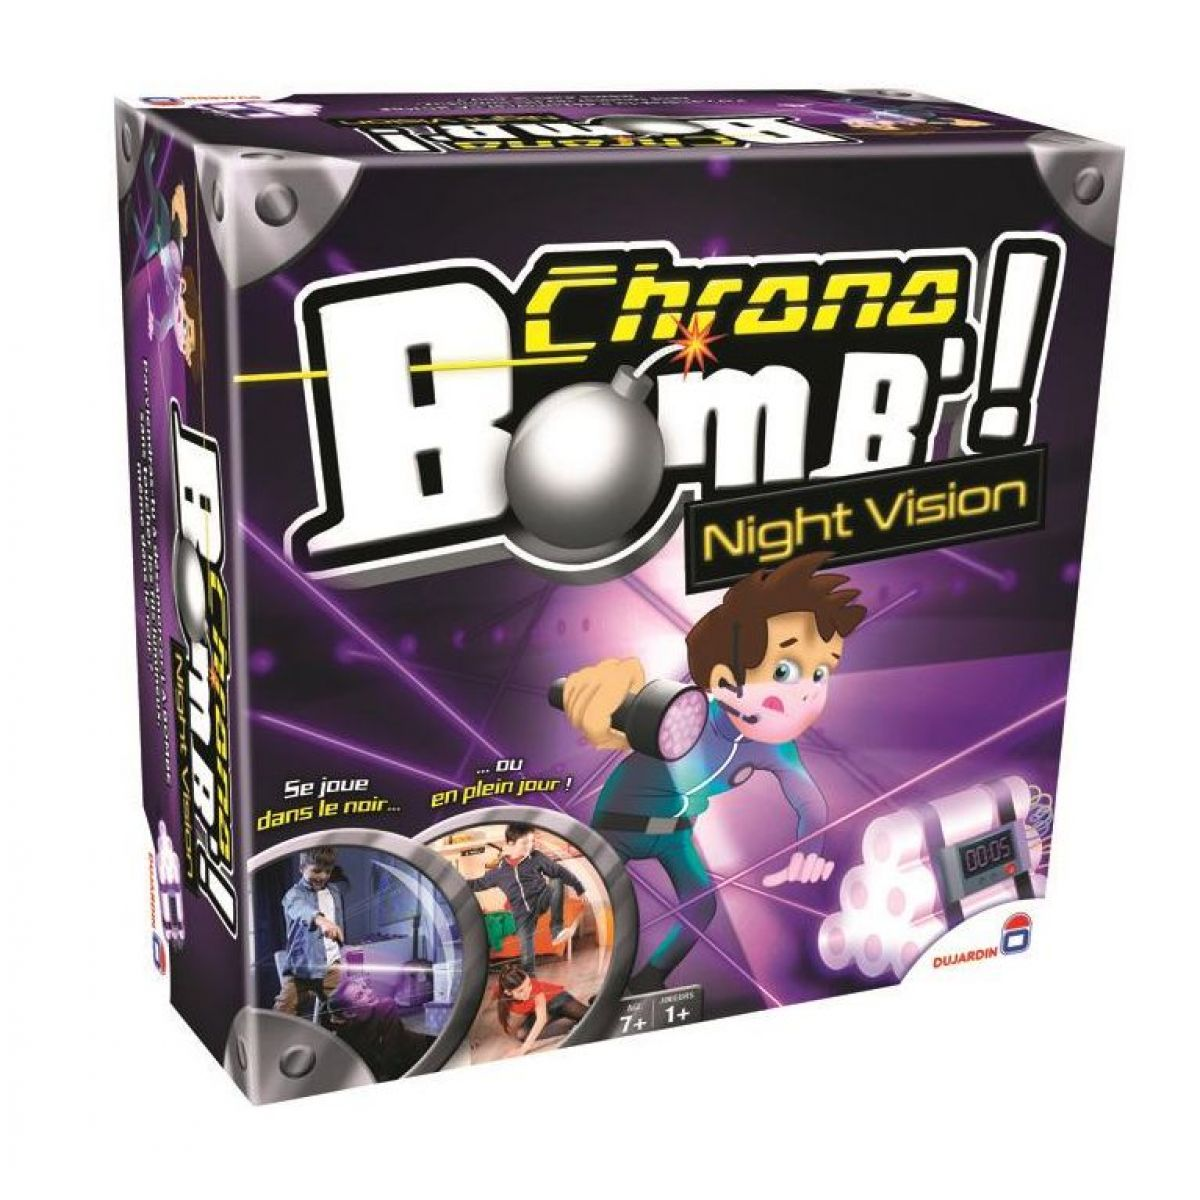 Cool Games Chrono Bomb night vision